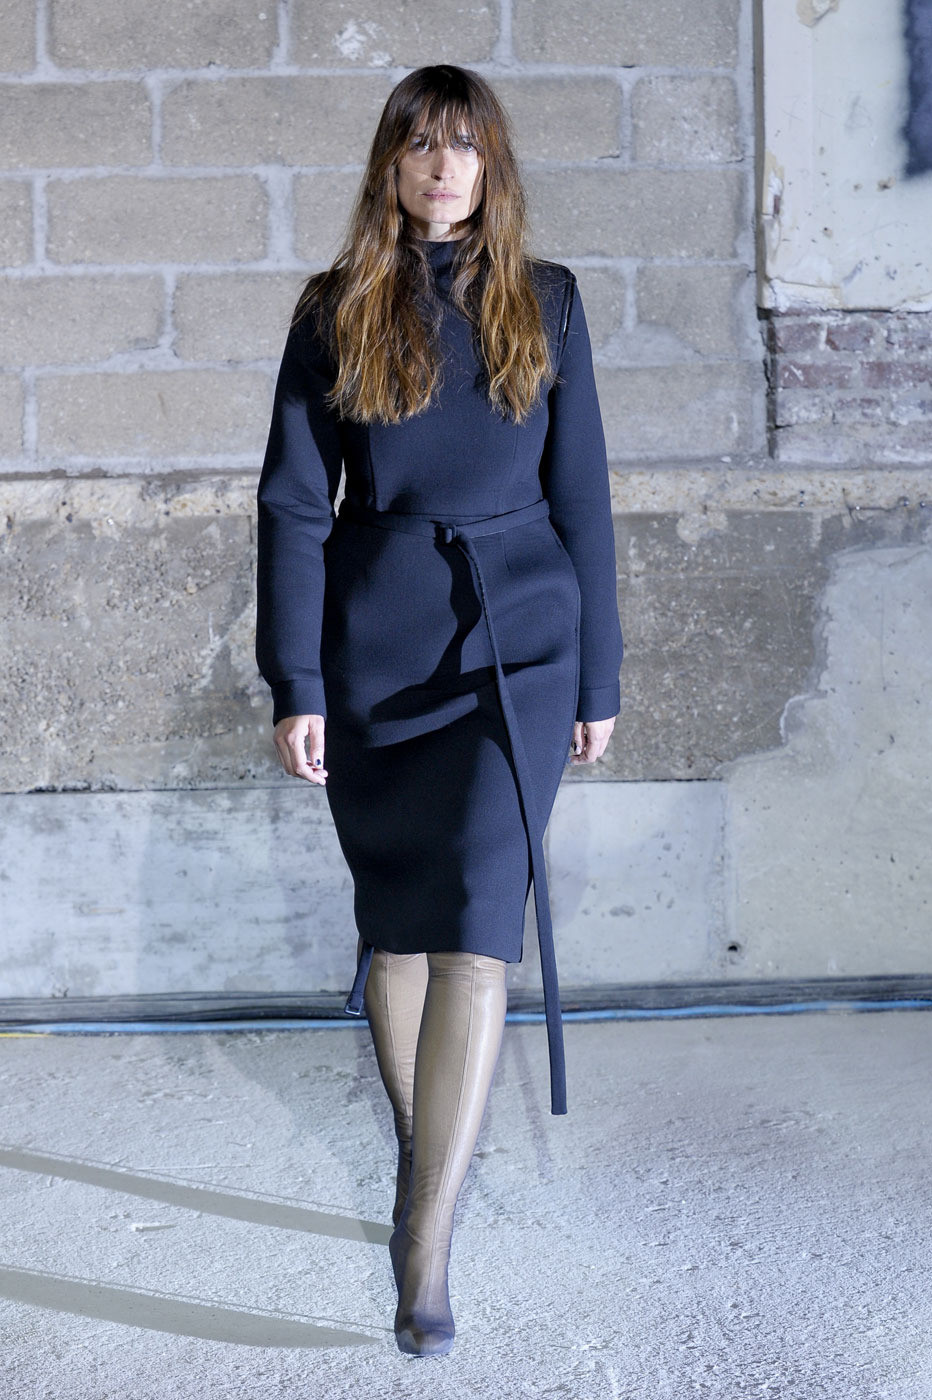 Maison martin margiela fall 2011 runway pictures livingly for Maison martin margiela paris